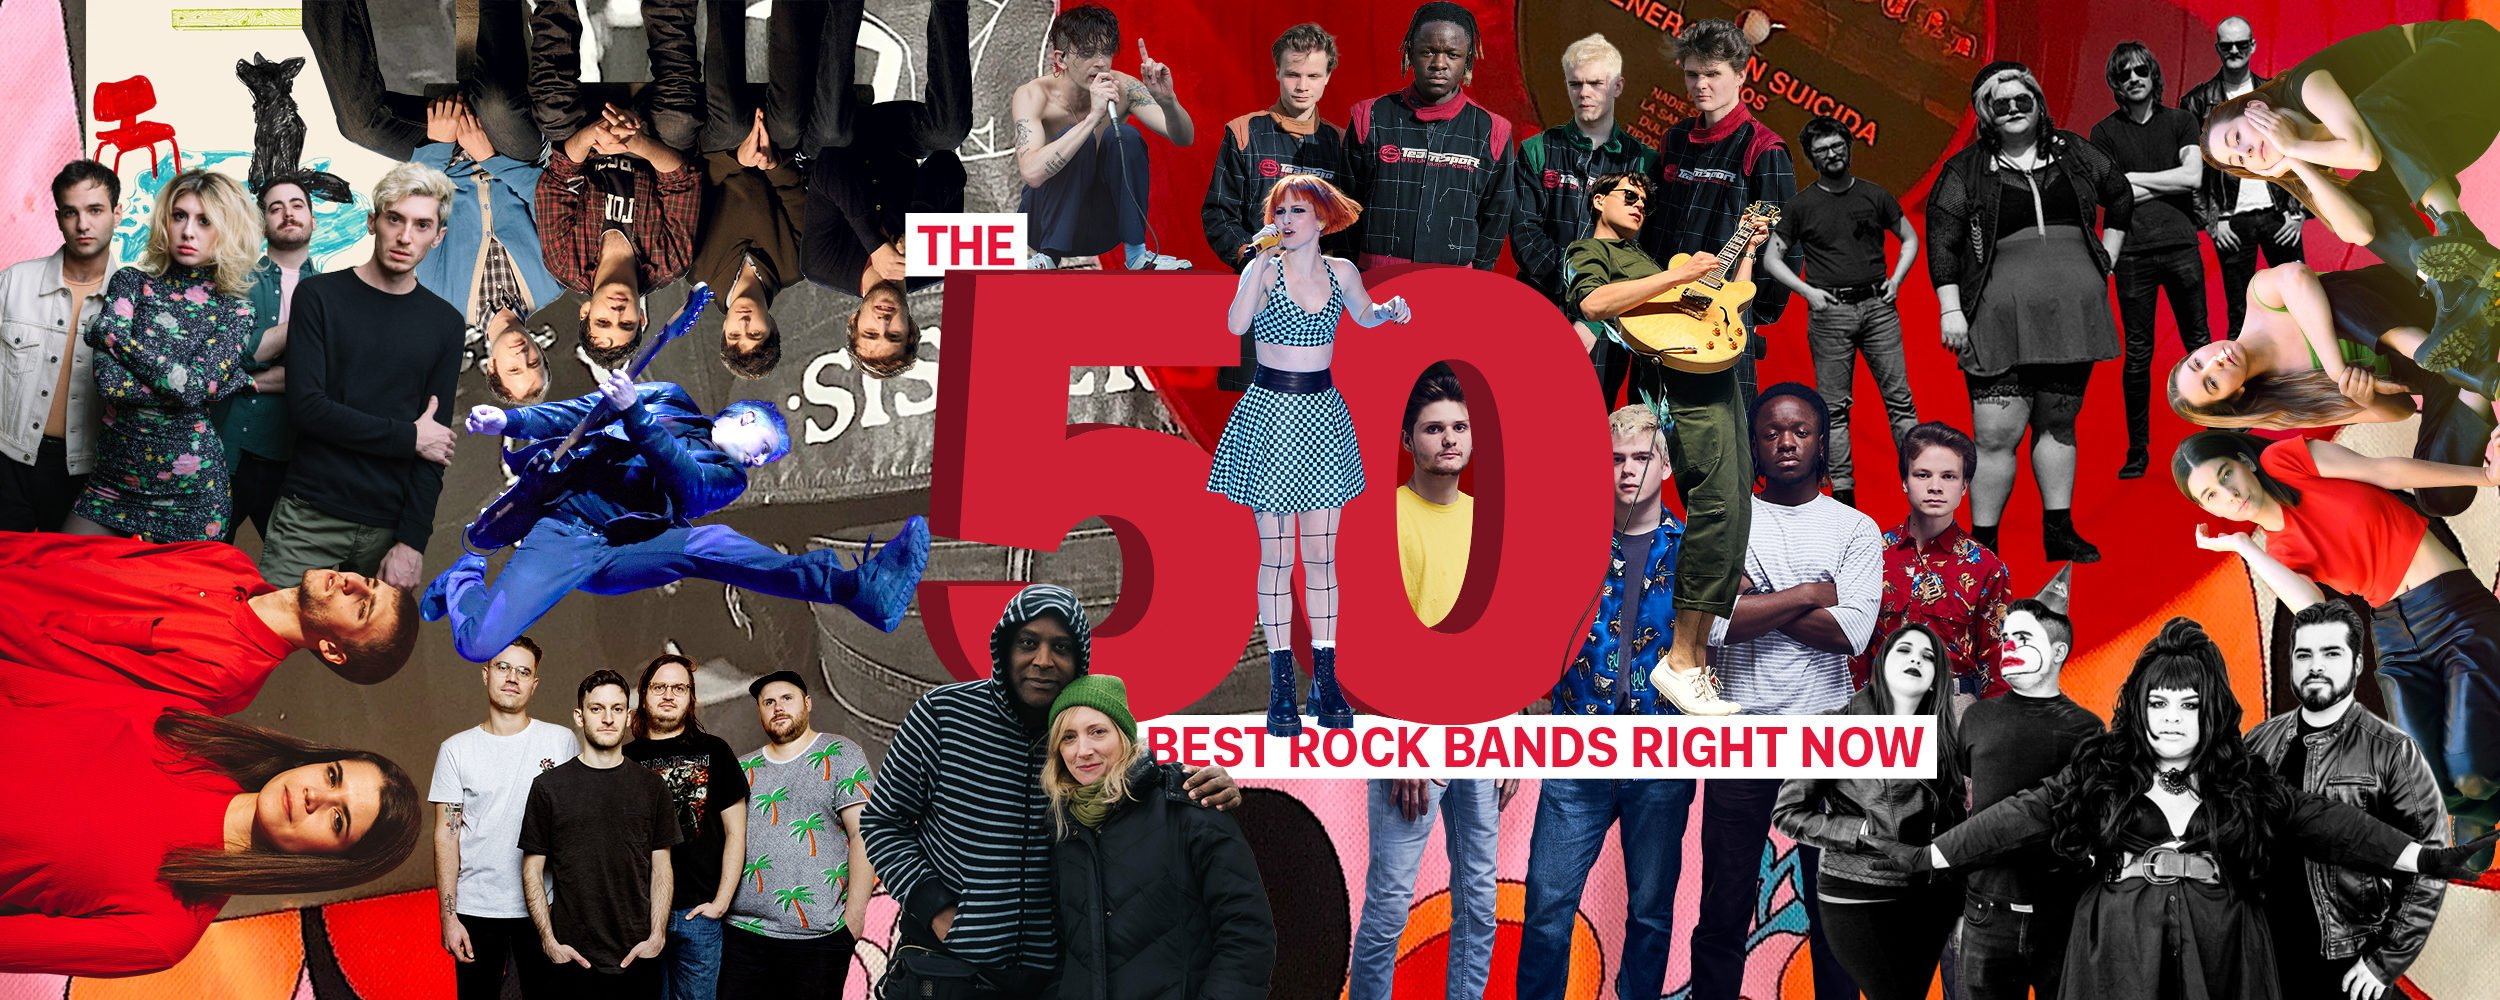 The 50 best rock bands heading into 2021